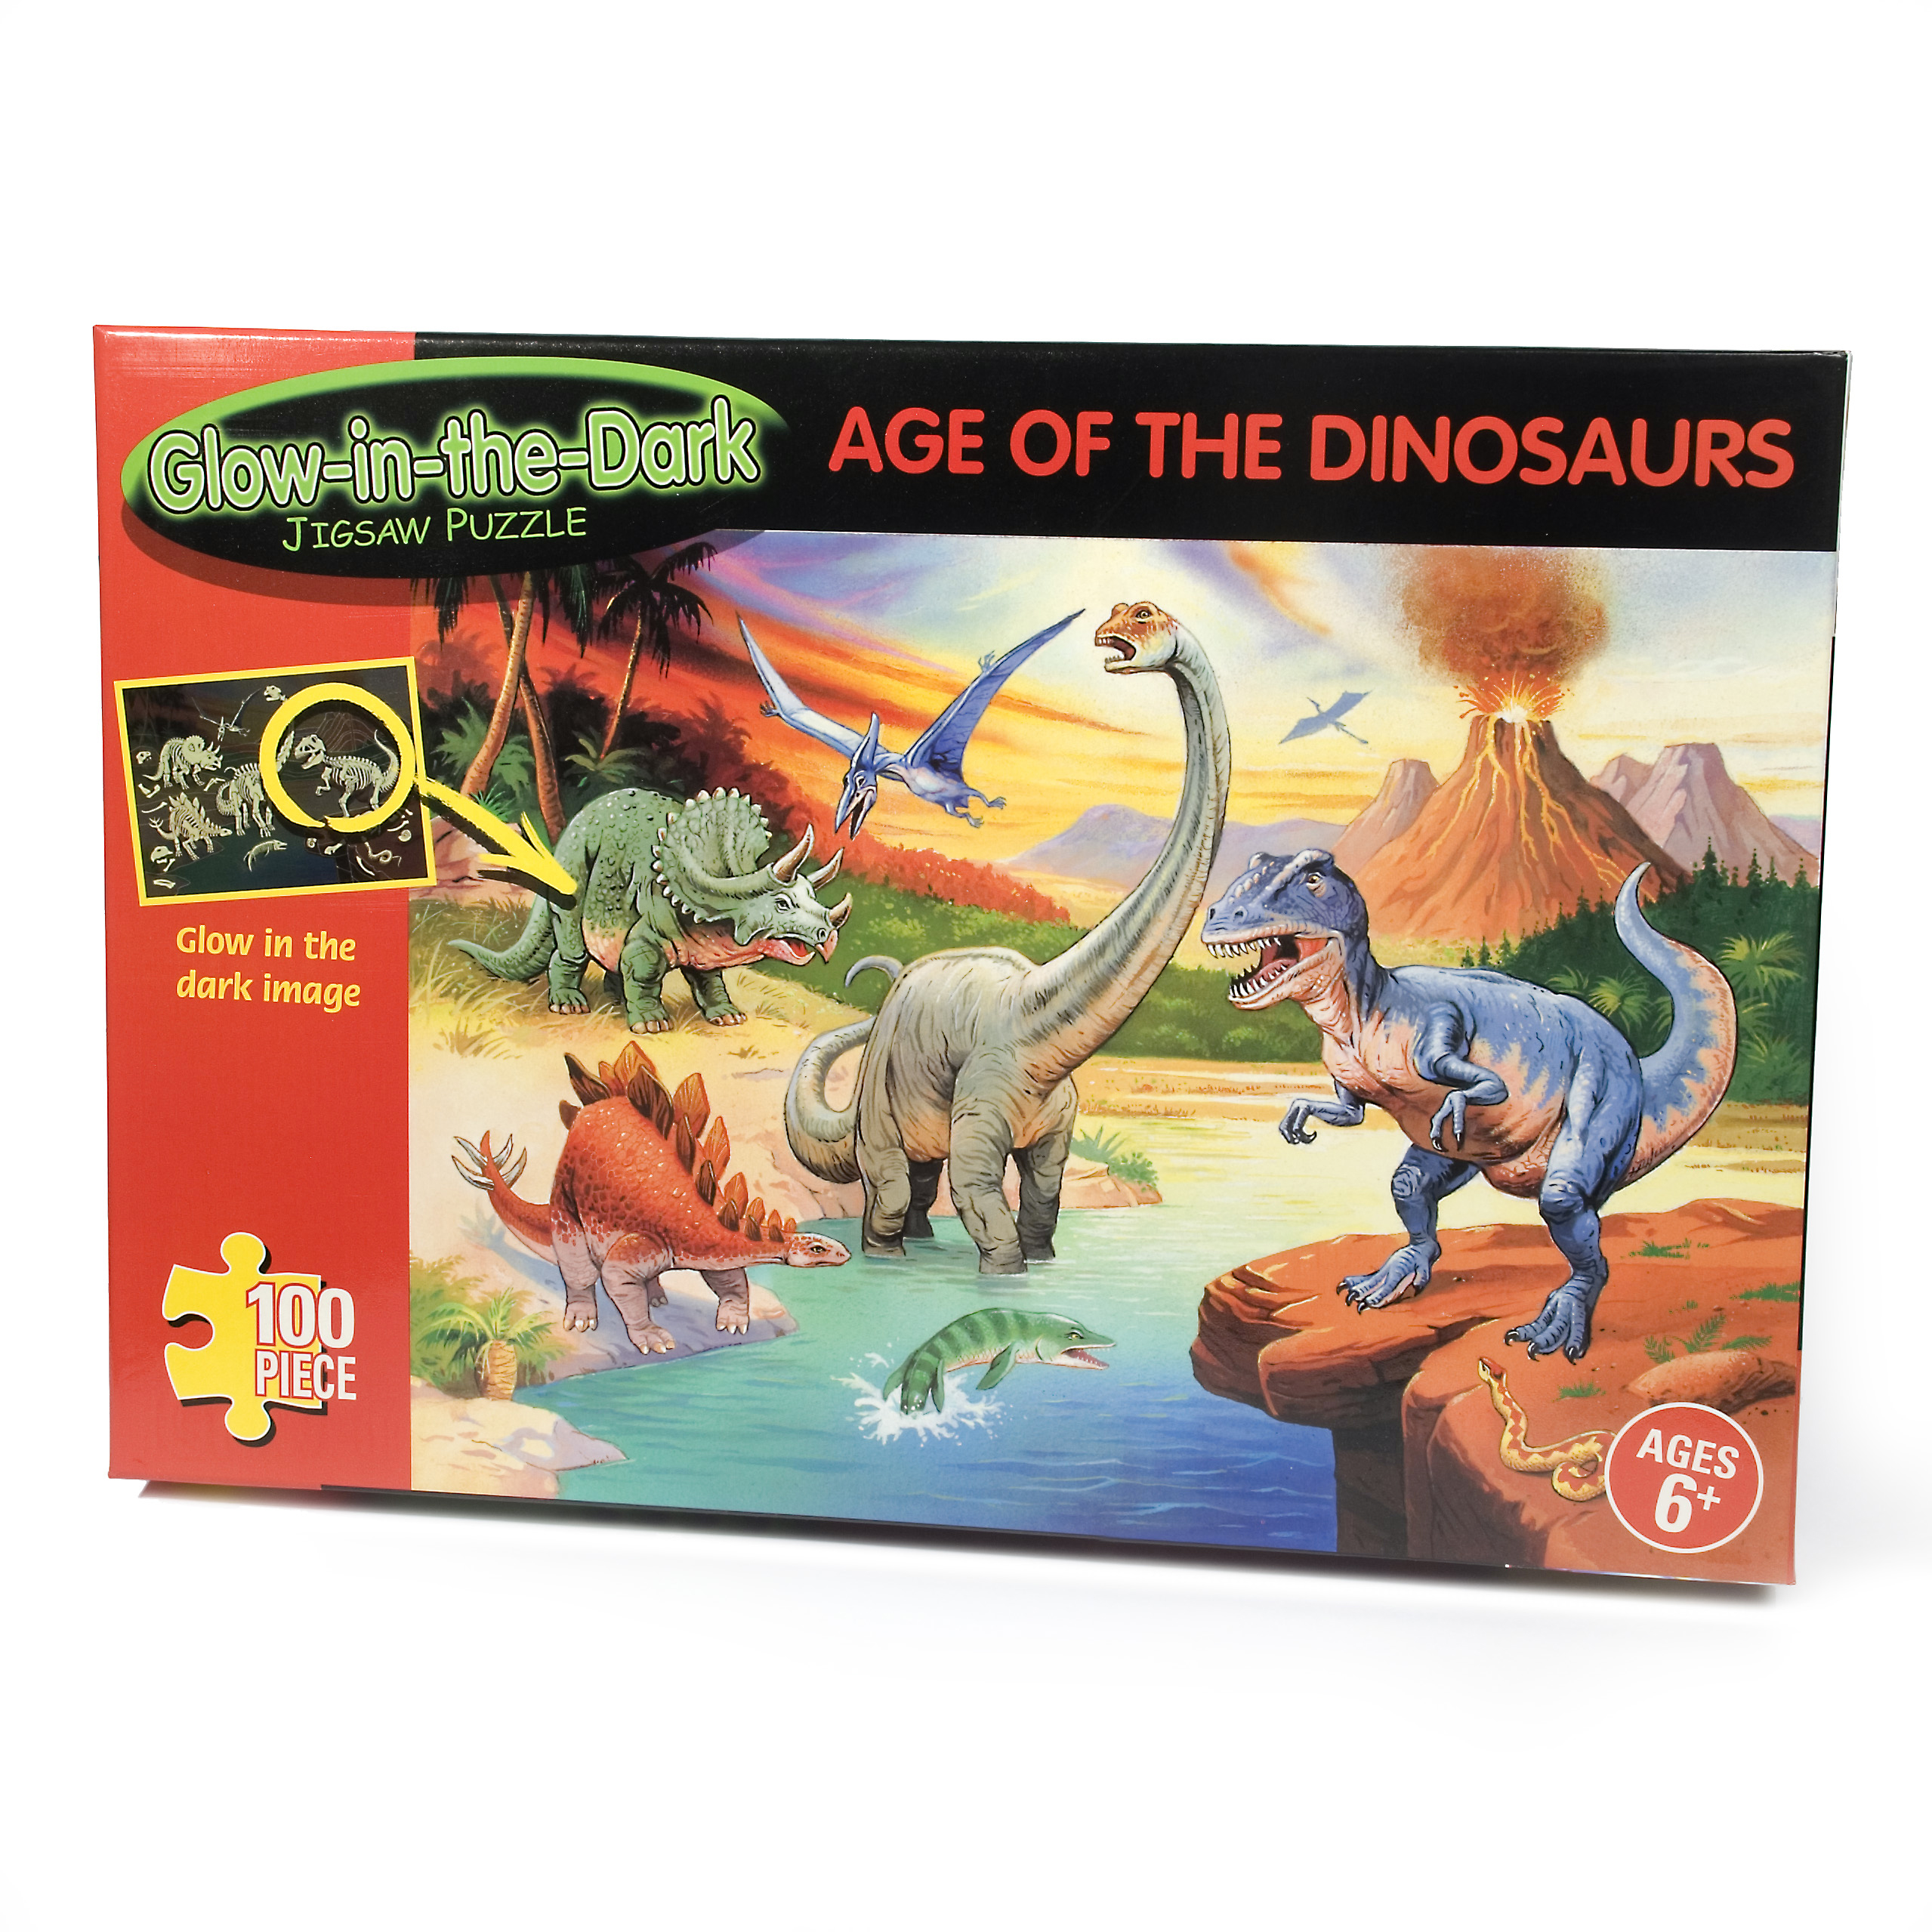 Age of Dinosaurs Glow In The Dark 100pc Jigsaw Puzzle - Jigsaw Puzzle Gifts